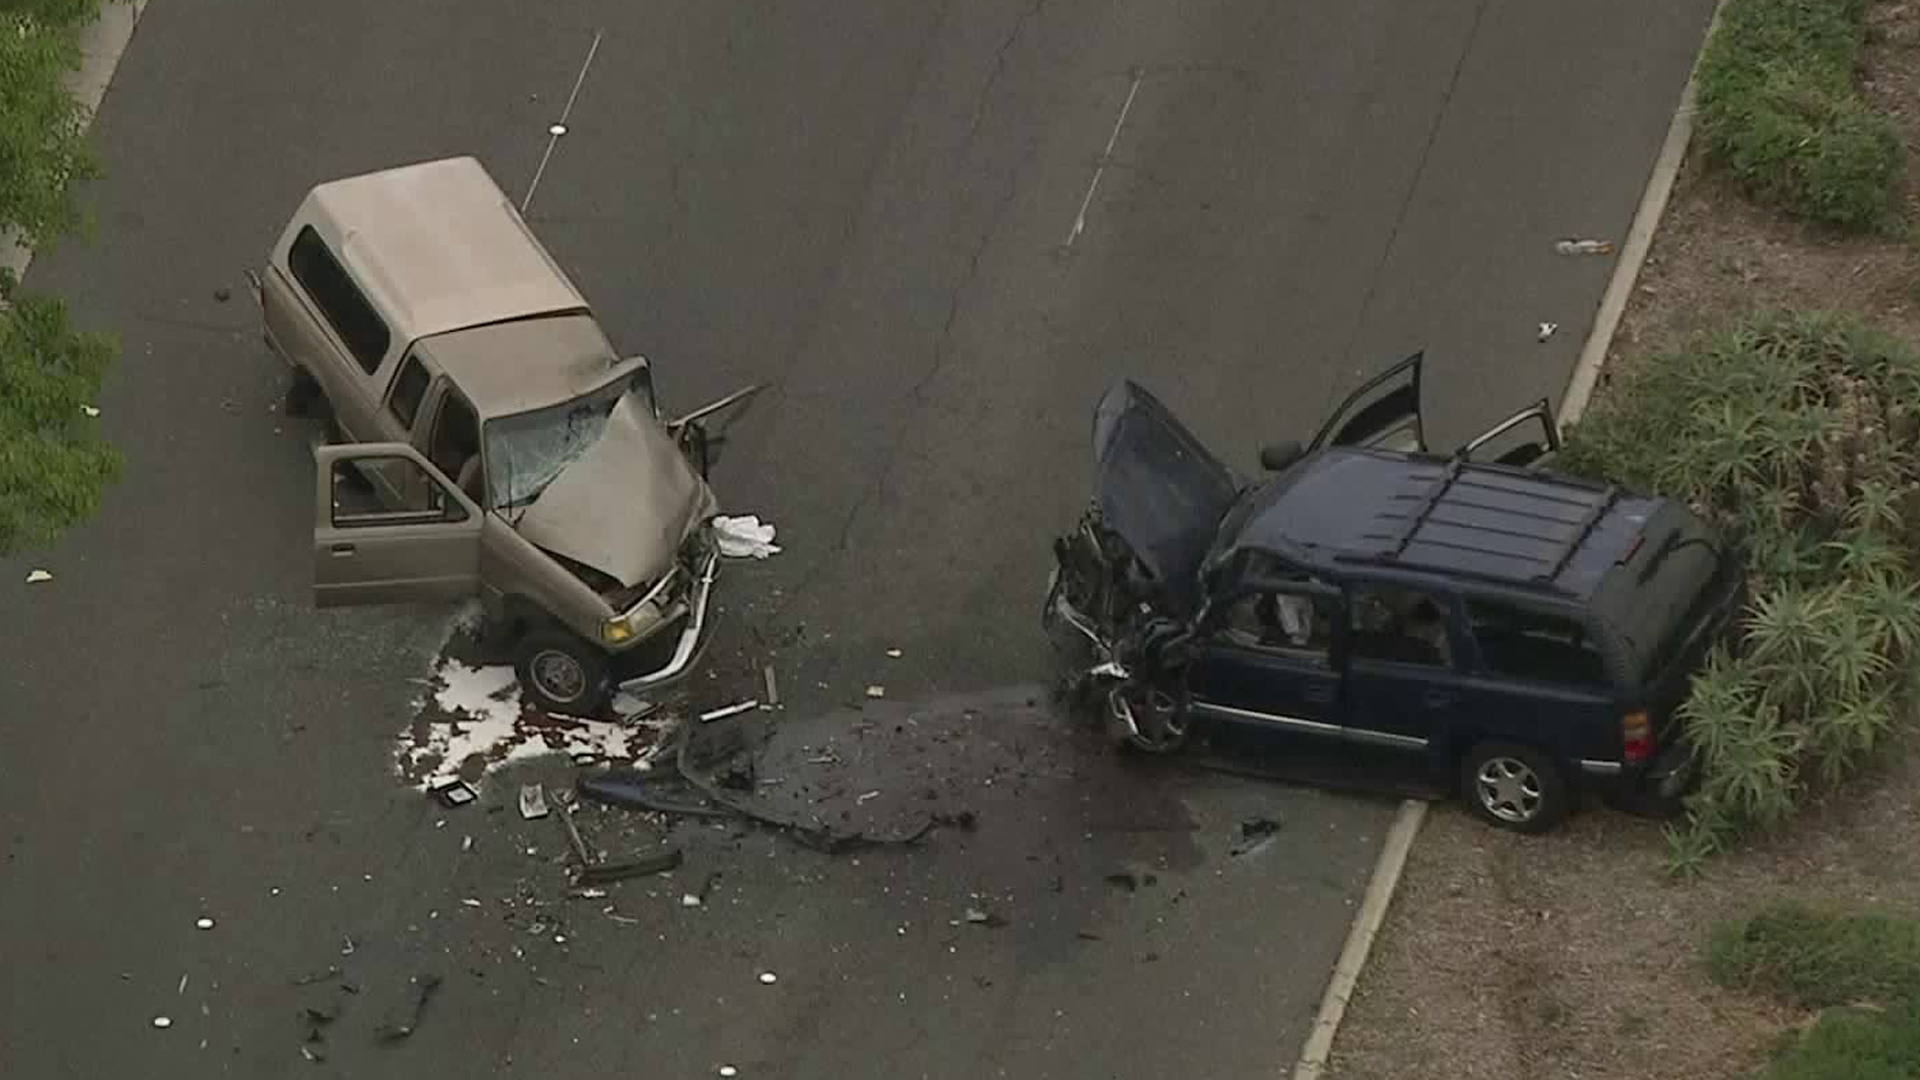 The scene of a fatal traffic collision on White Avenue in Pomona is seen on May 7, 2019. (Credit: KTLA)